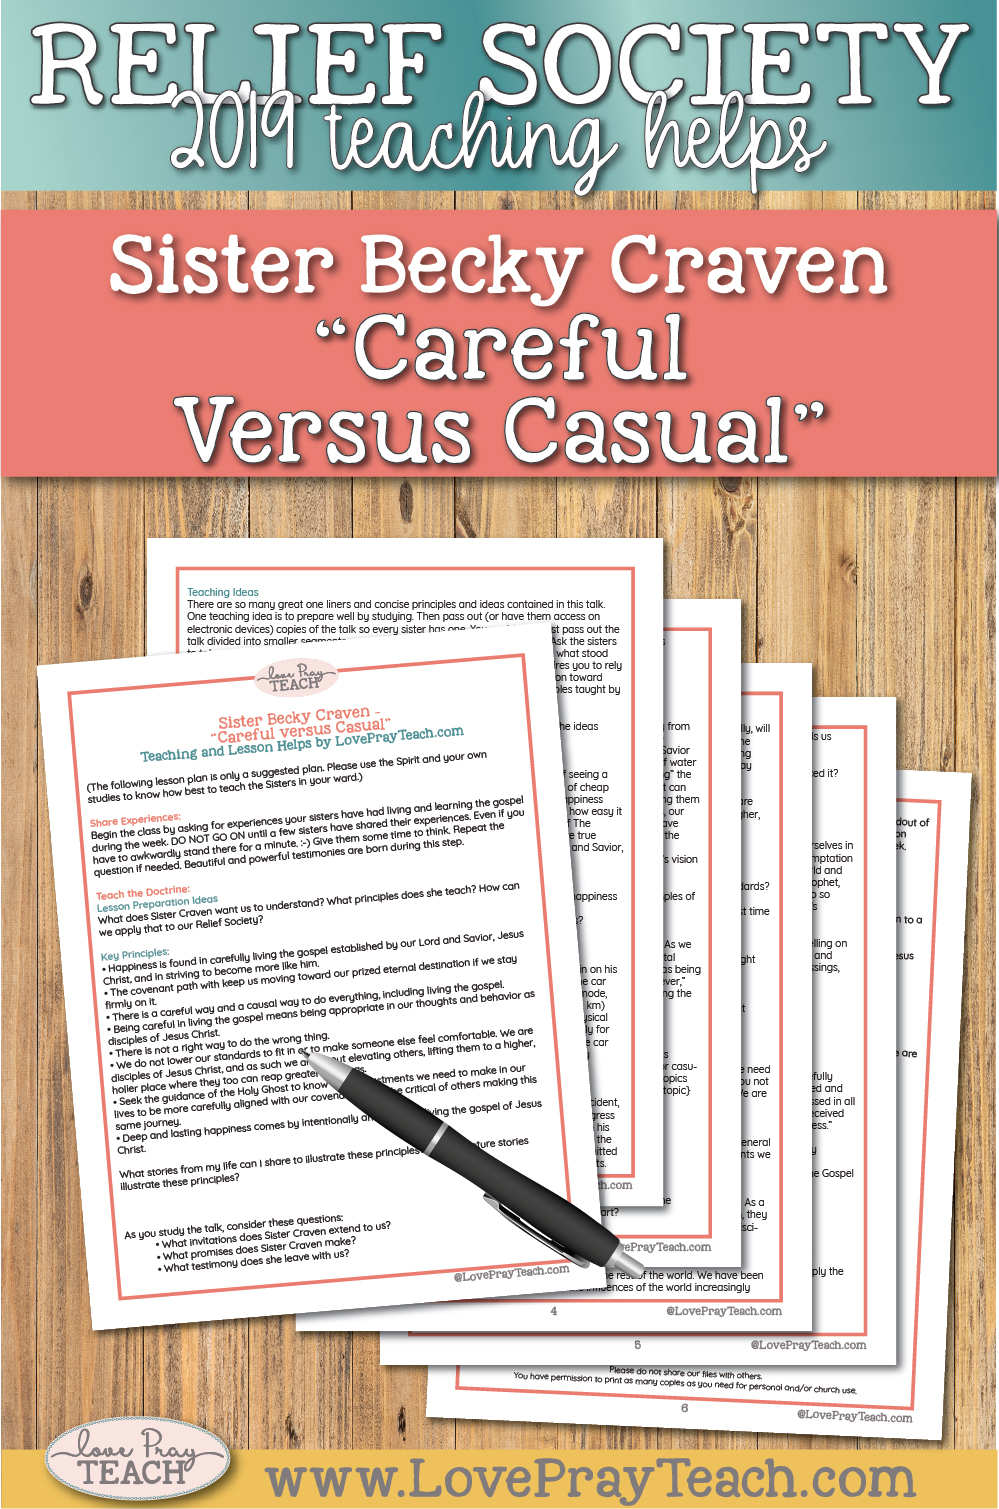 """April 2019 General Conference Lesson Helps for Relief Society: Sister Becky Craven """"Careful Versus Casual"""""""